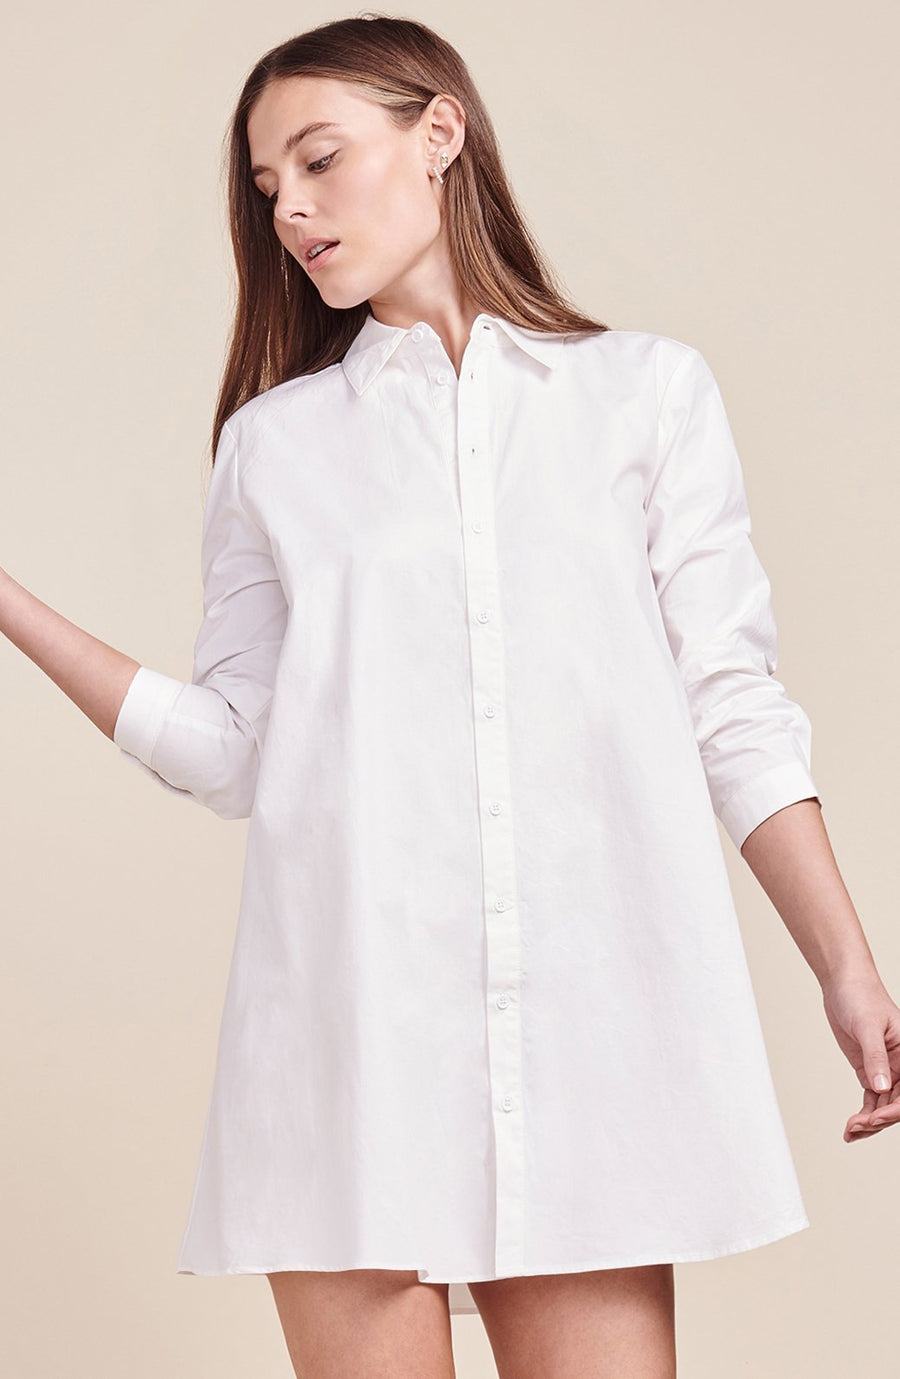 BB DAKOTA COLT SHIRT DRESS